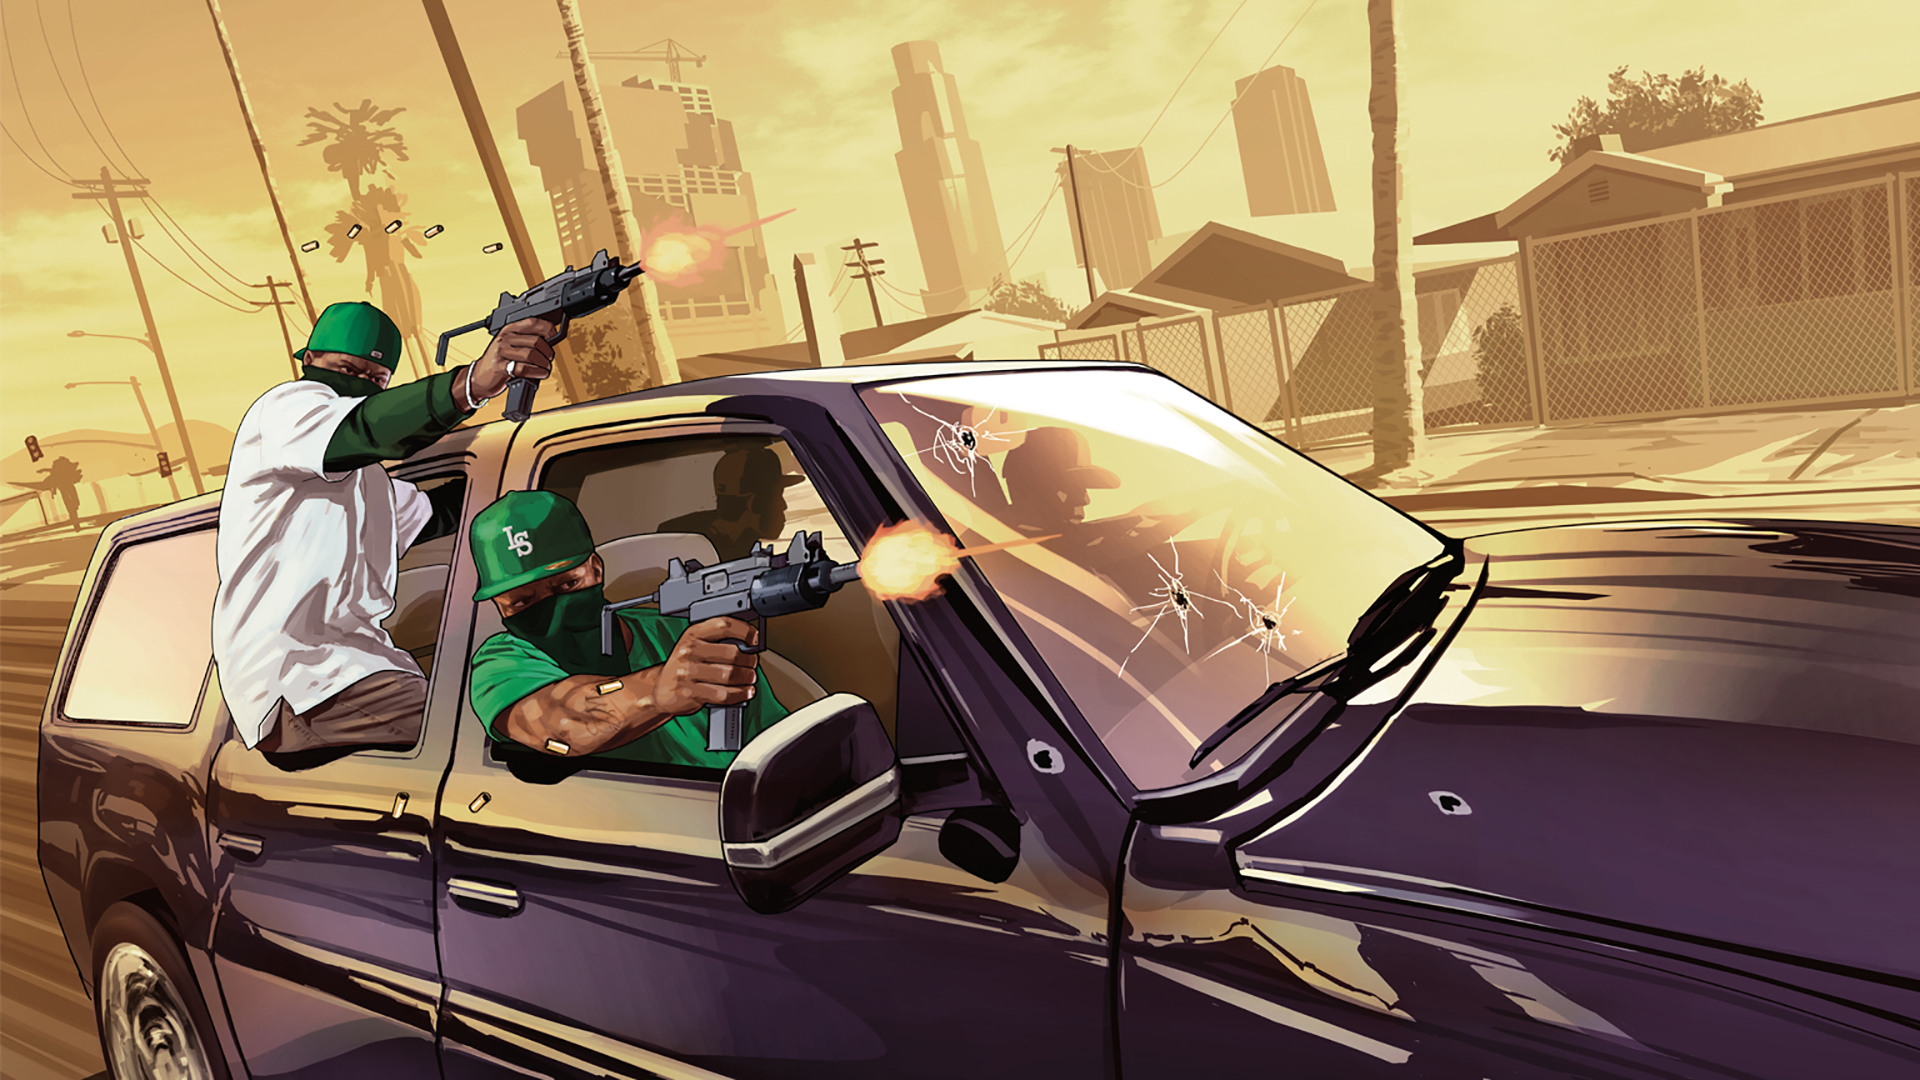 1920x1080 Grand Theft Auto V Gta5 Grove Street 1080p Laptop Full